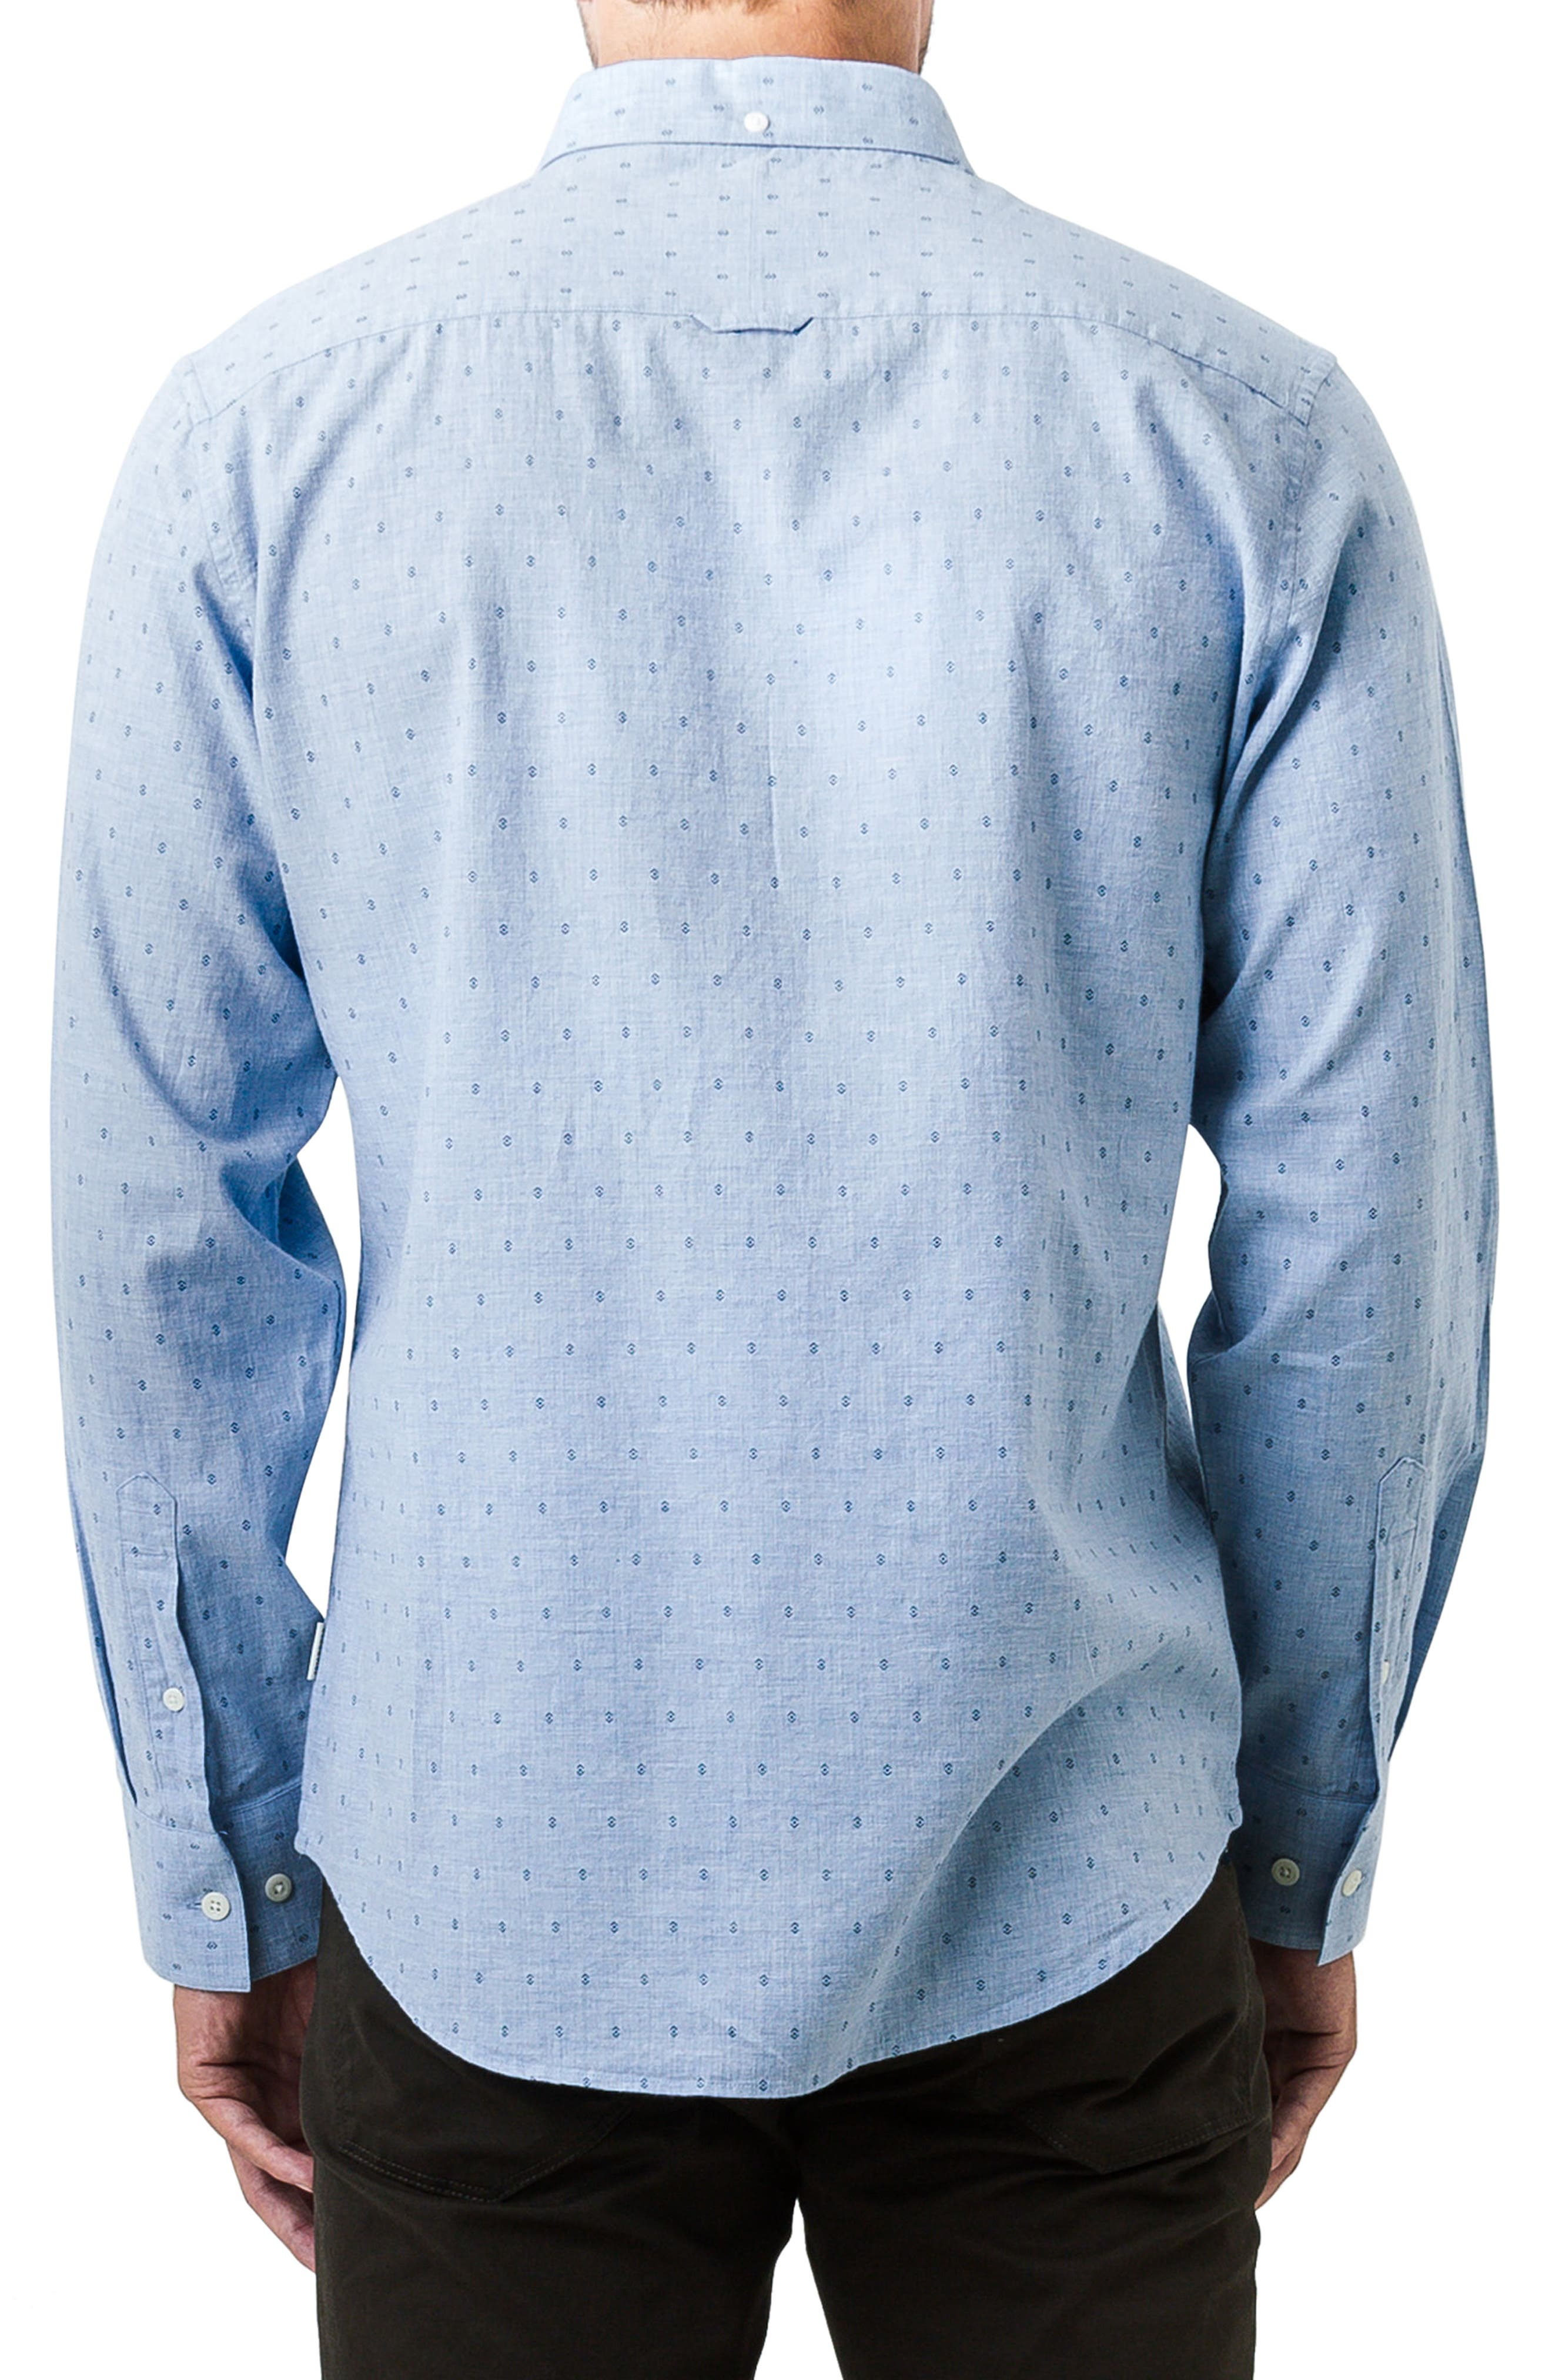 First Light Woven Shirt,                             Alternate thumbnail 2, color,                             Light Blue